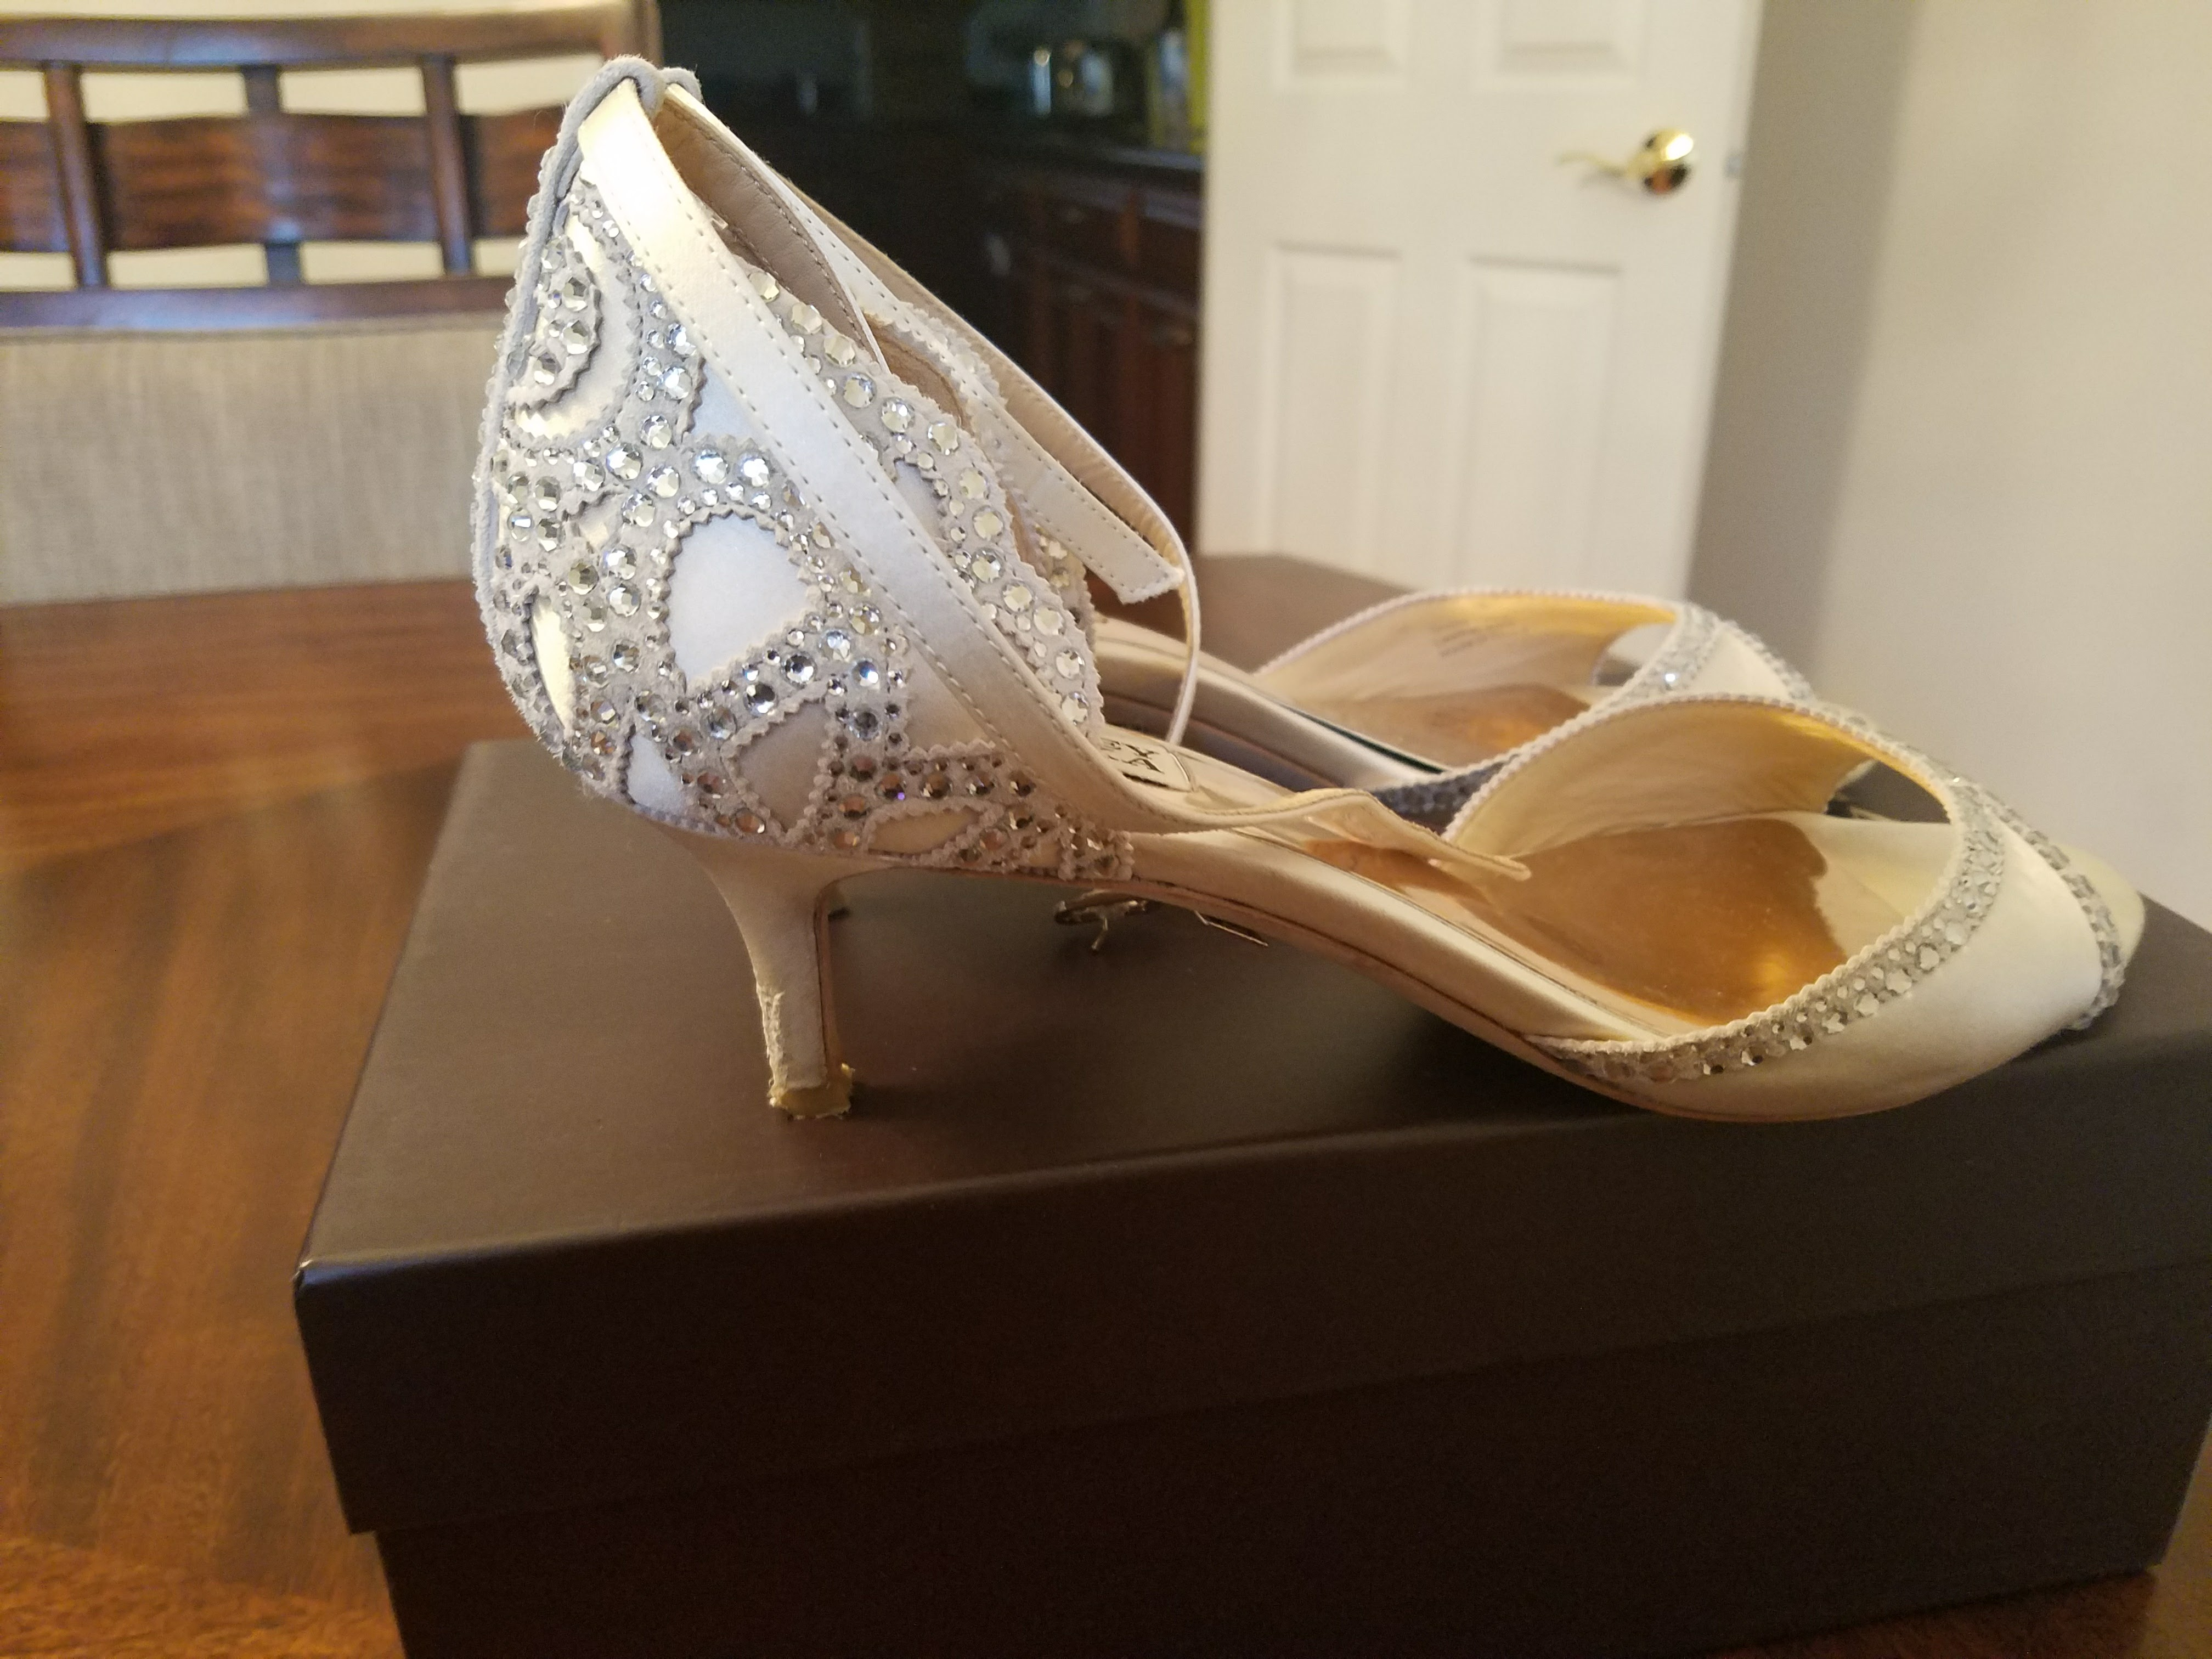 Badgley Mischka Gillian Ankle Strap Ivory Satin Shoes - Size 8